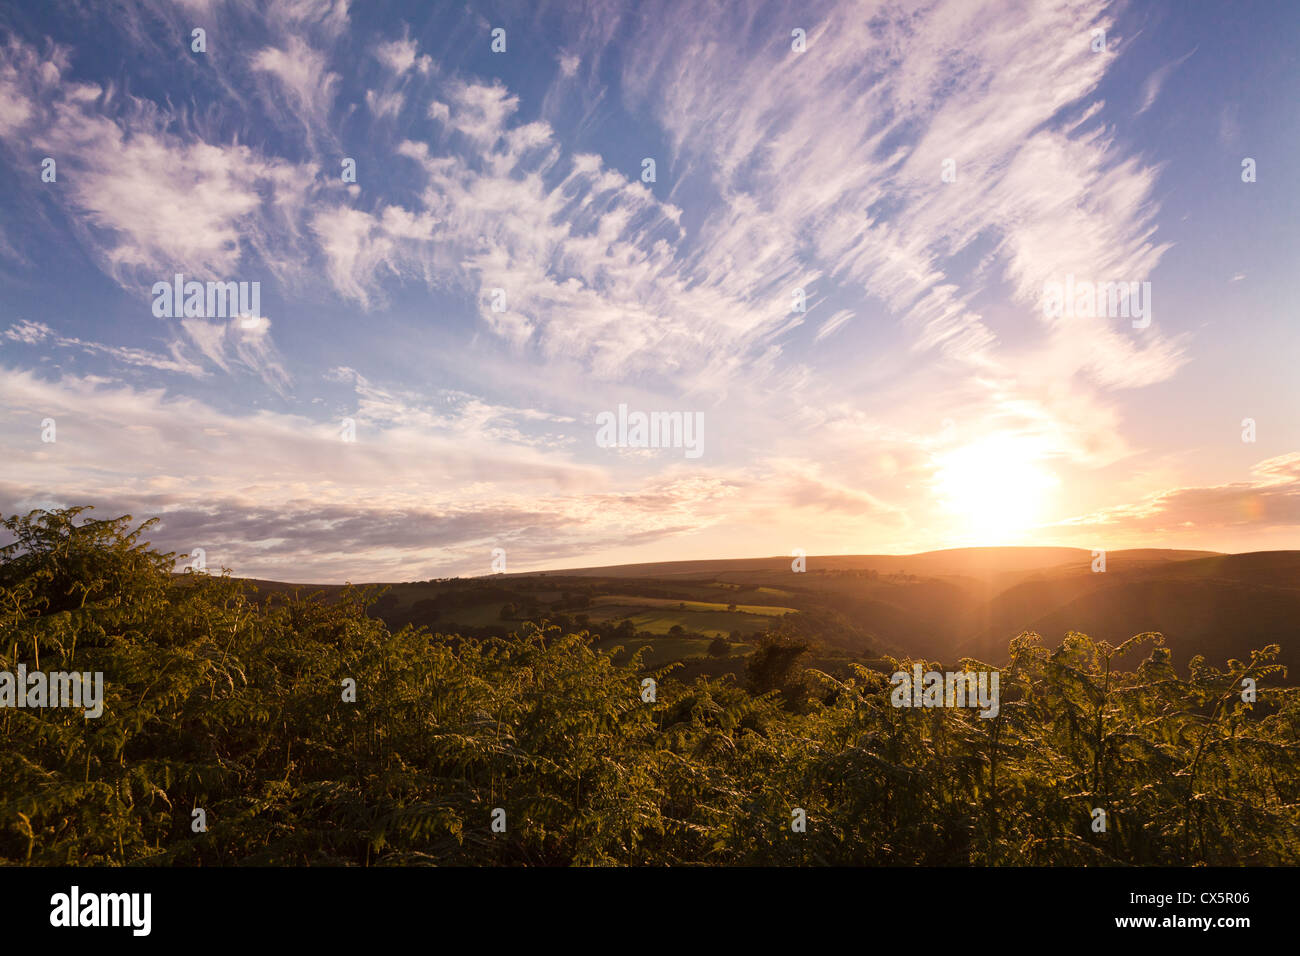 Sunset on Exmoor from Dunkery Hill, Somerset, UK - Stock Image